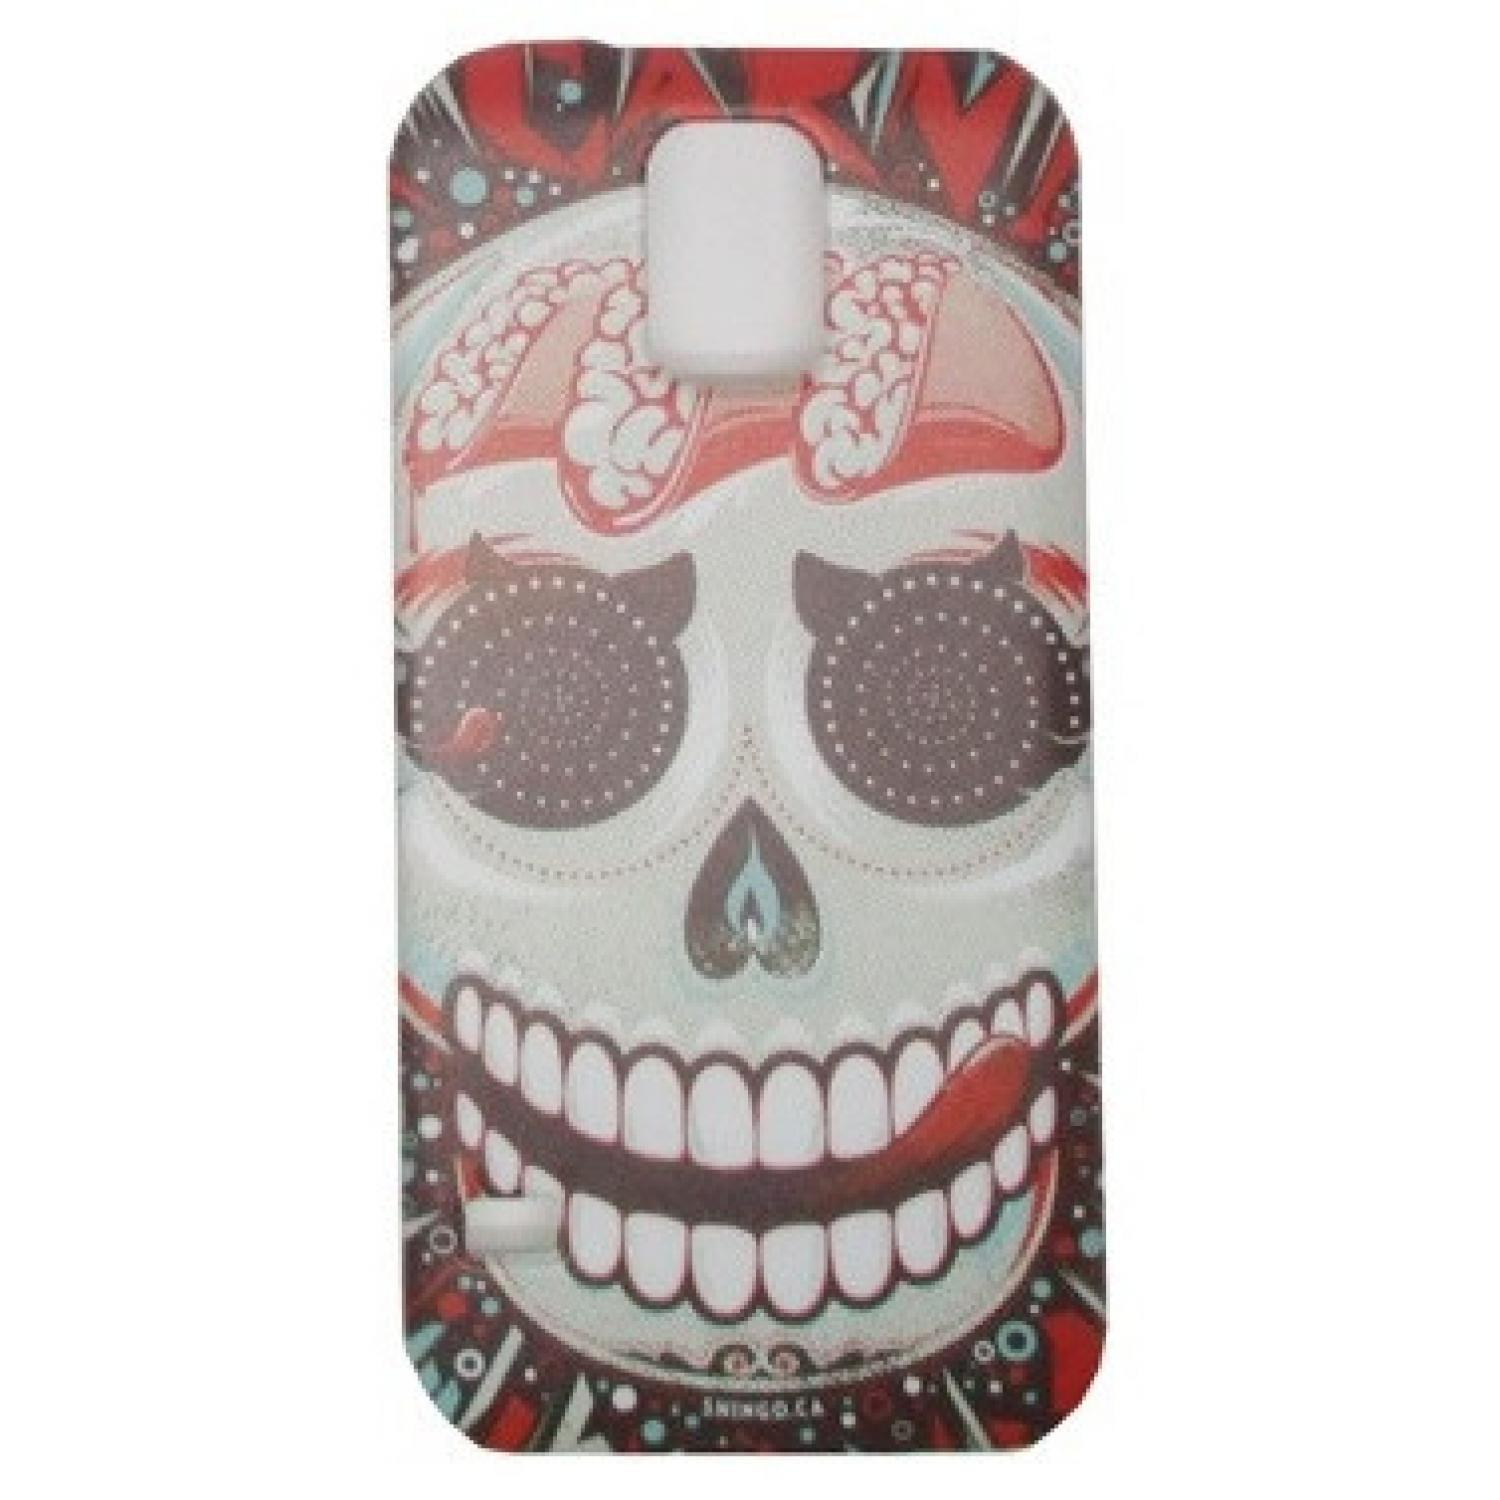 Painting Phone Plastic Case for Samsung Galaxy S5 Casing HP Murah Terbaru